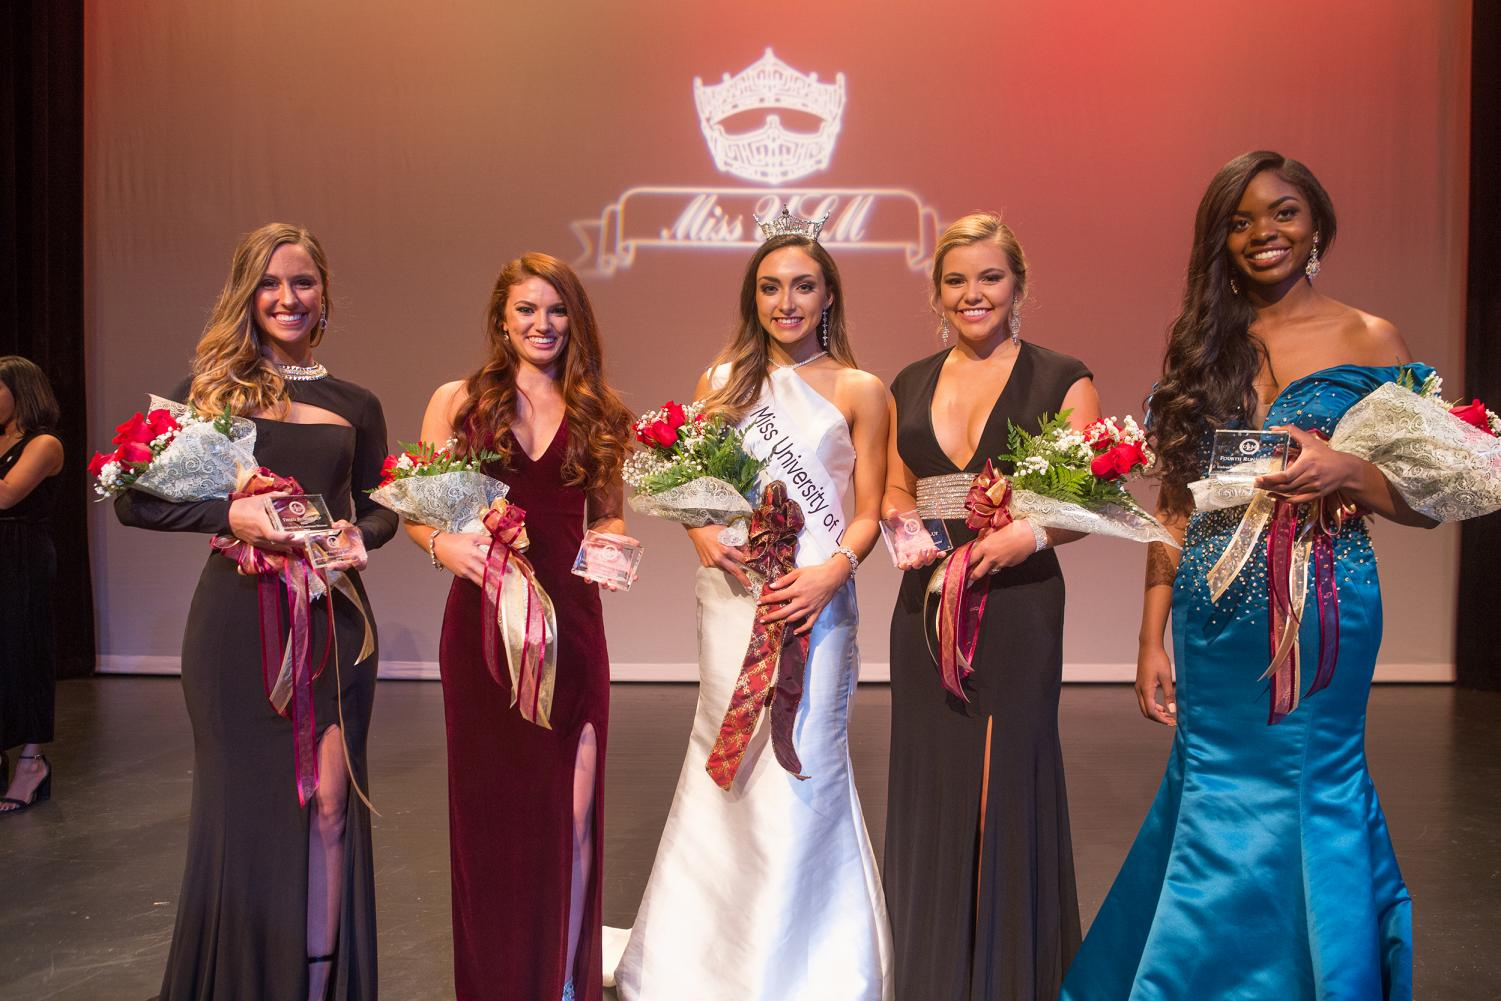 Miss ULM Monica Whitman with the top 5 contestants.